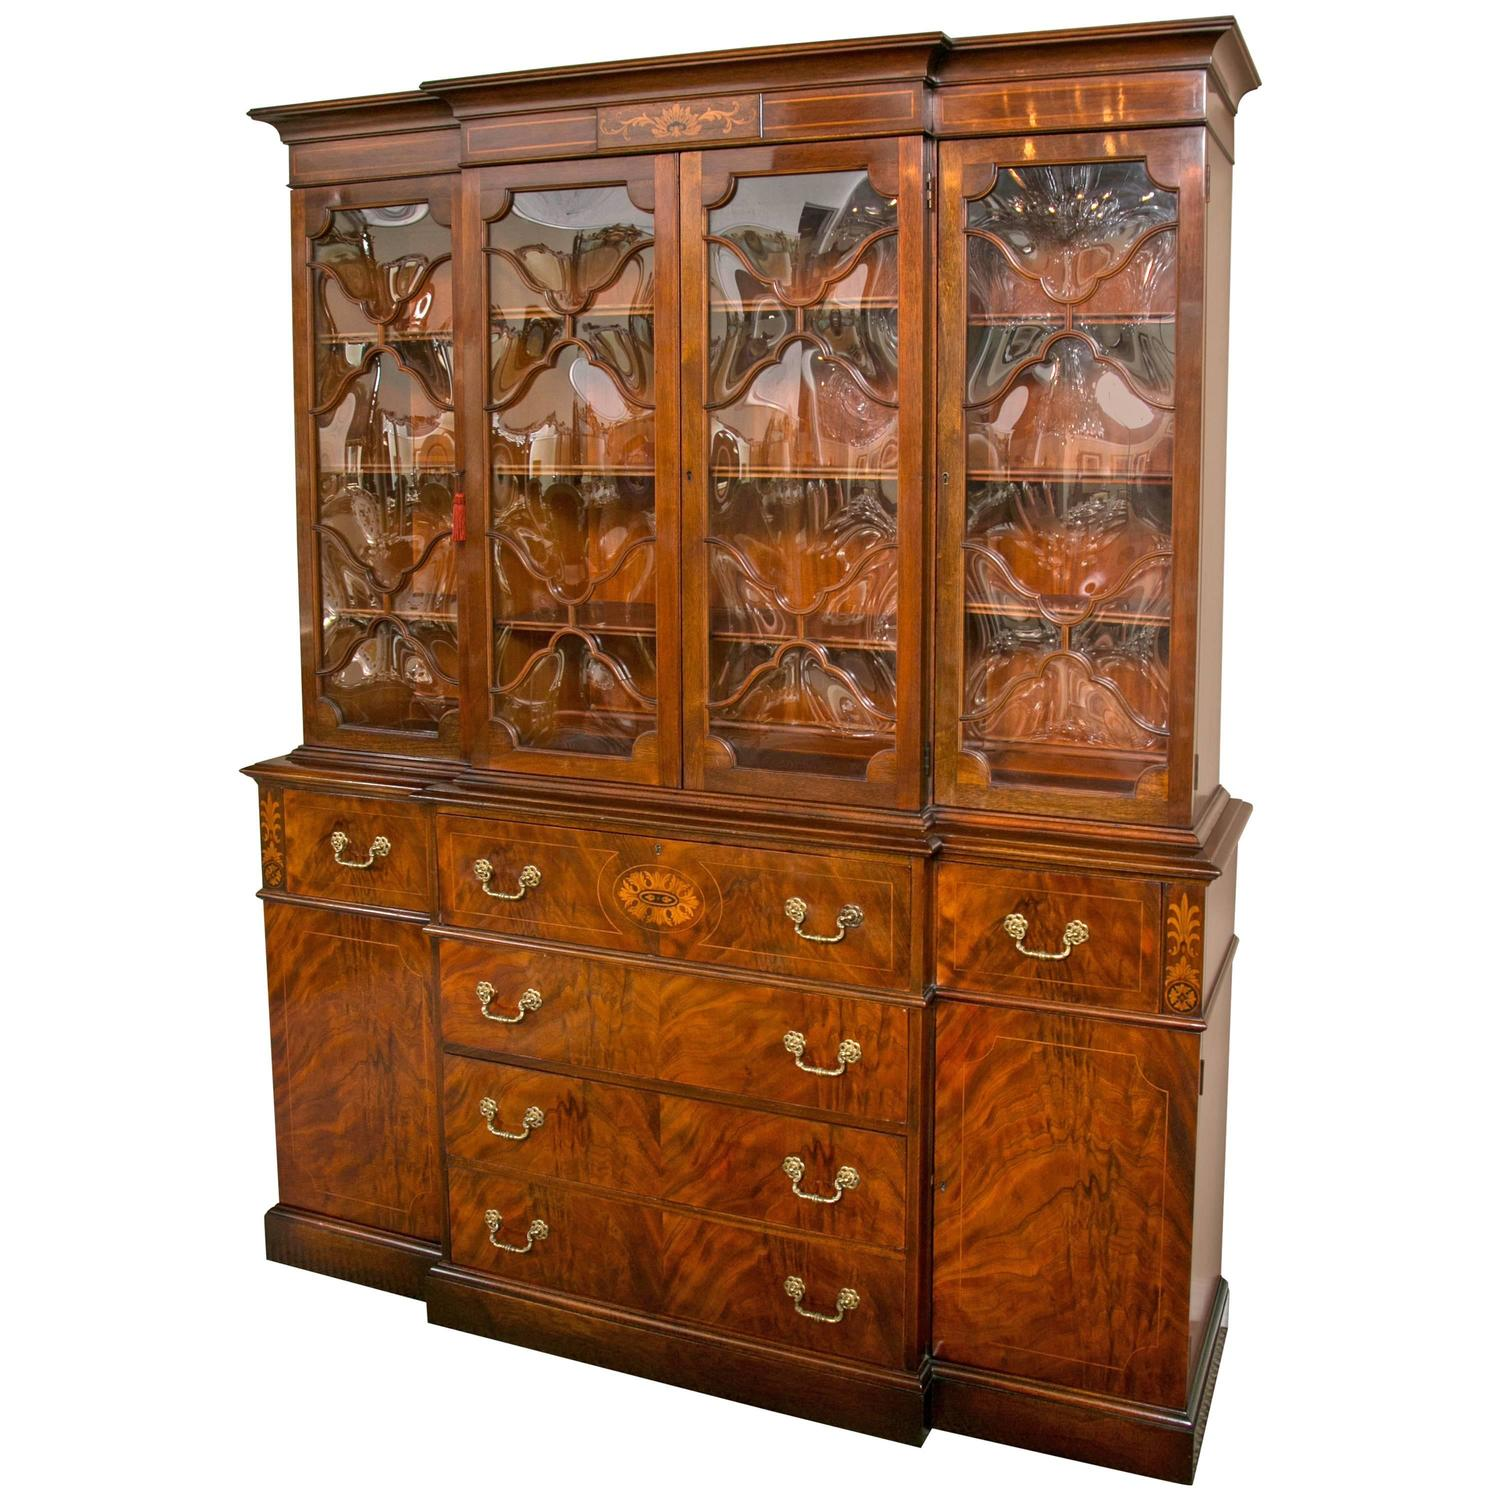 Georgian Style Saginaw Breakfront Bookcase Cabinet at 1stdibs